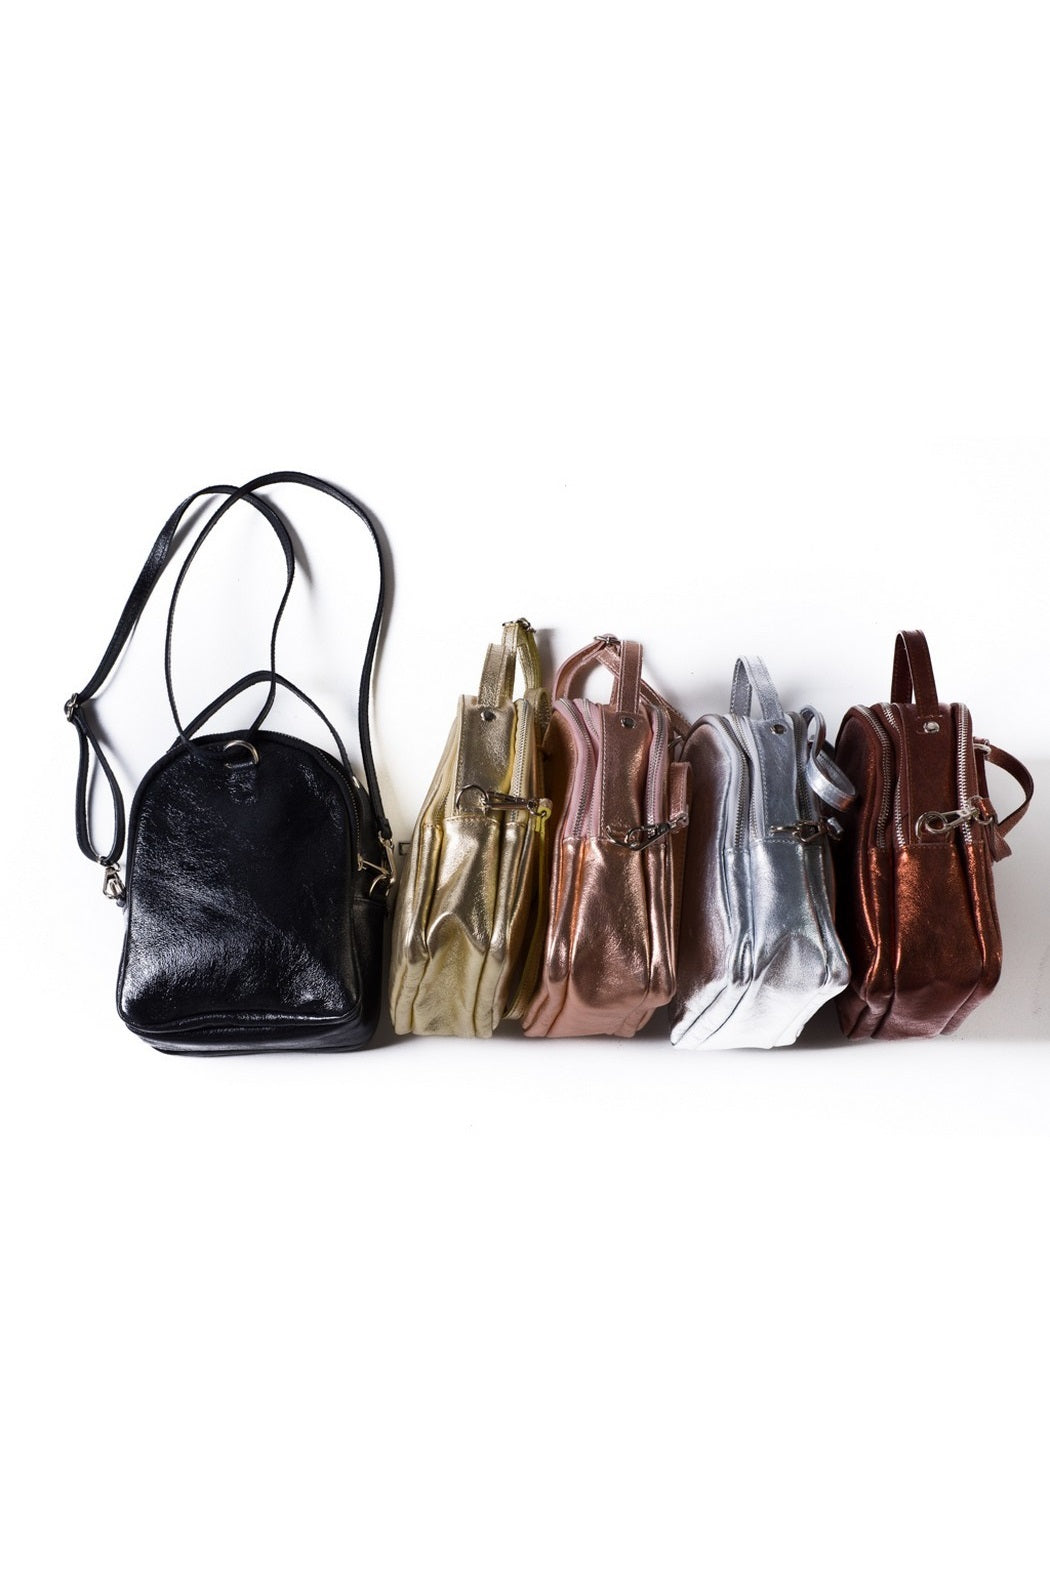 metallic leather back pack small mini leather backpack italian hand made leather backpack